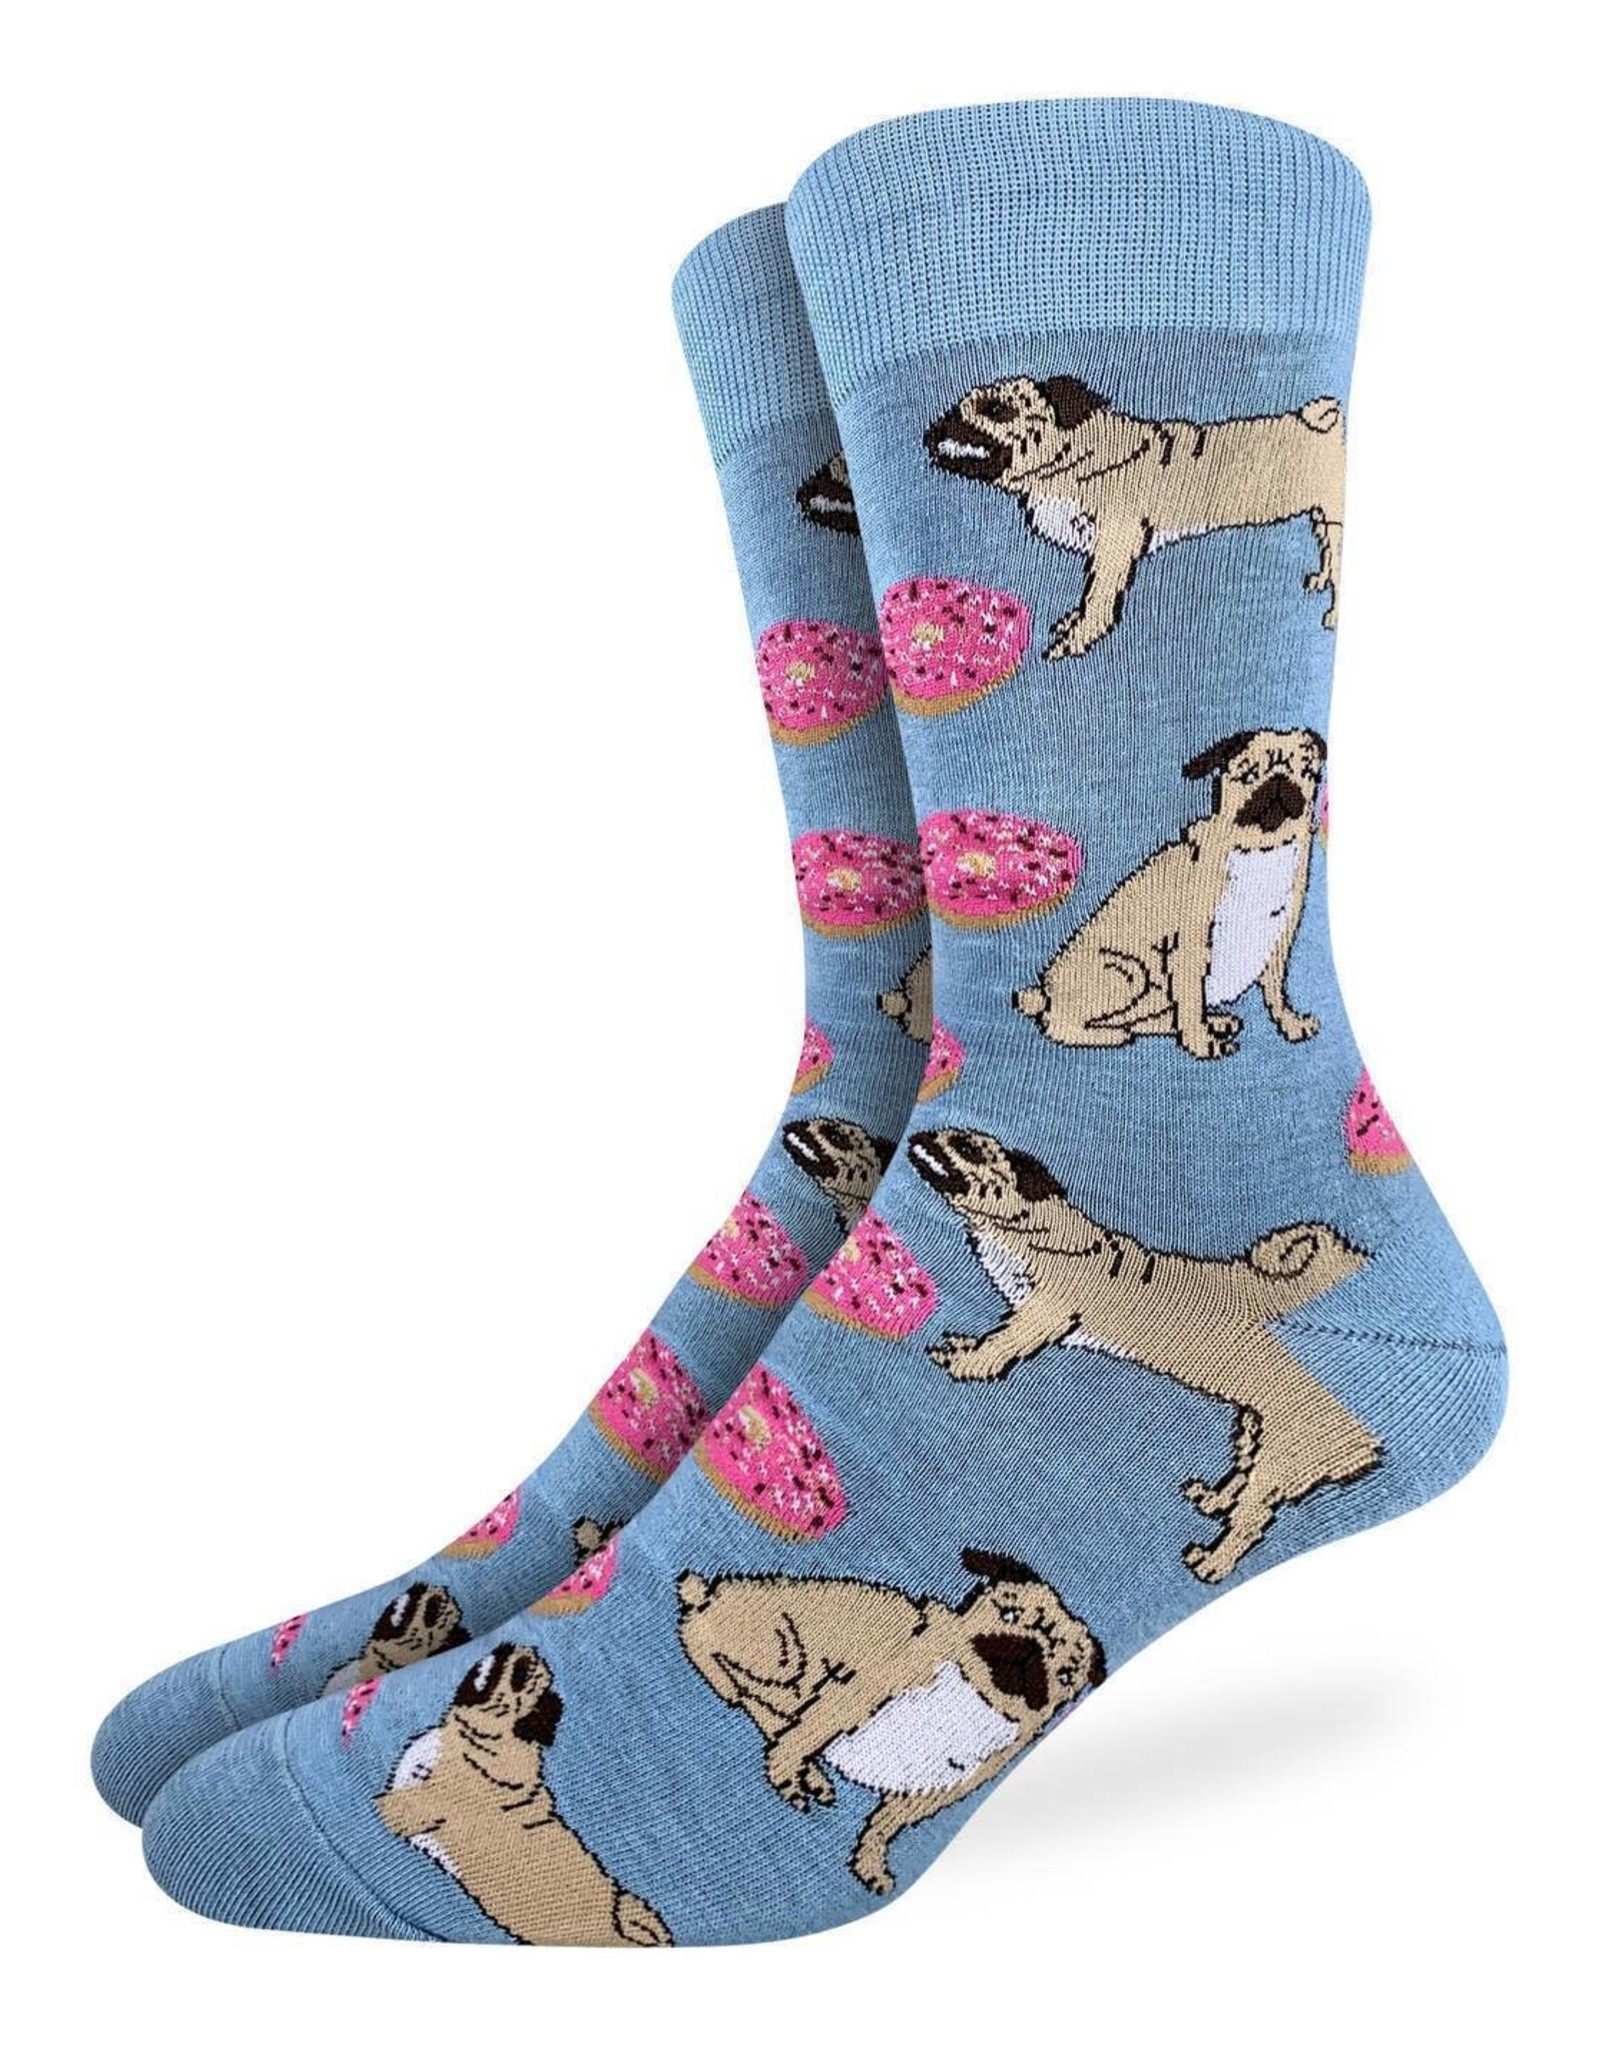 Good Luck Sock Pugs and Donuts